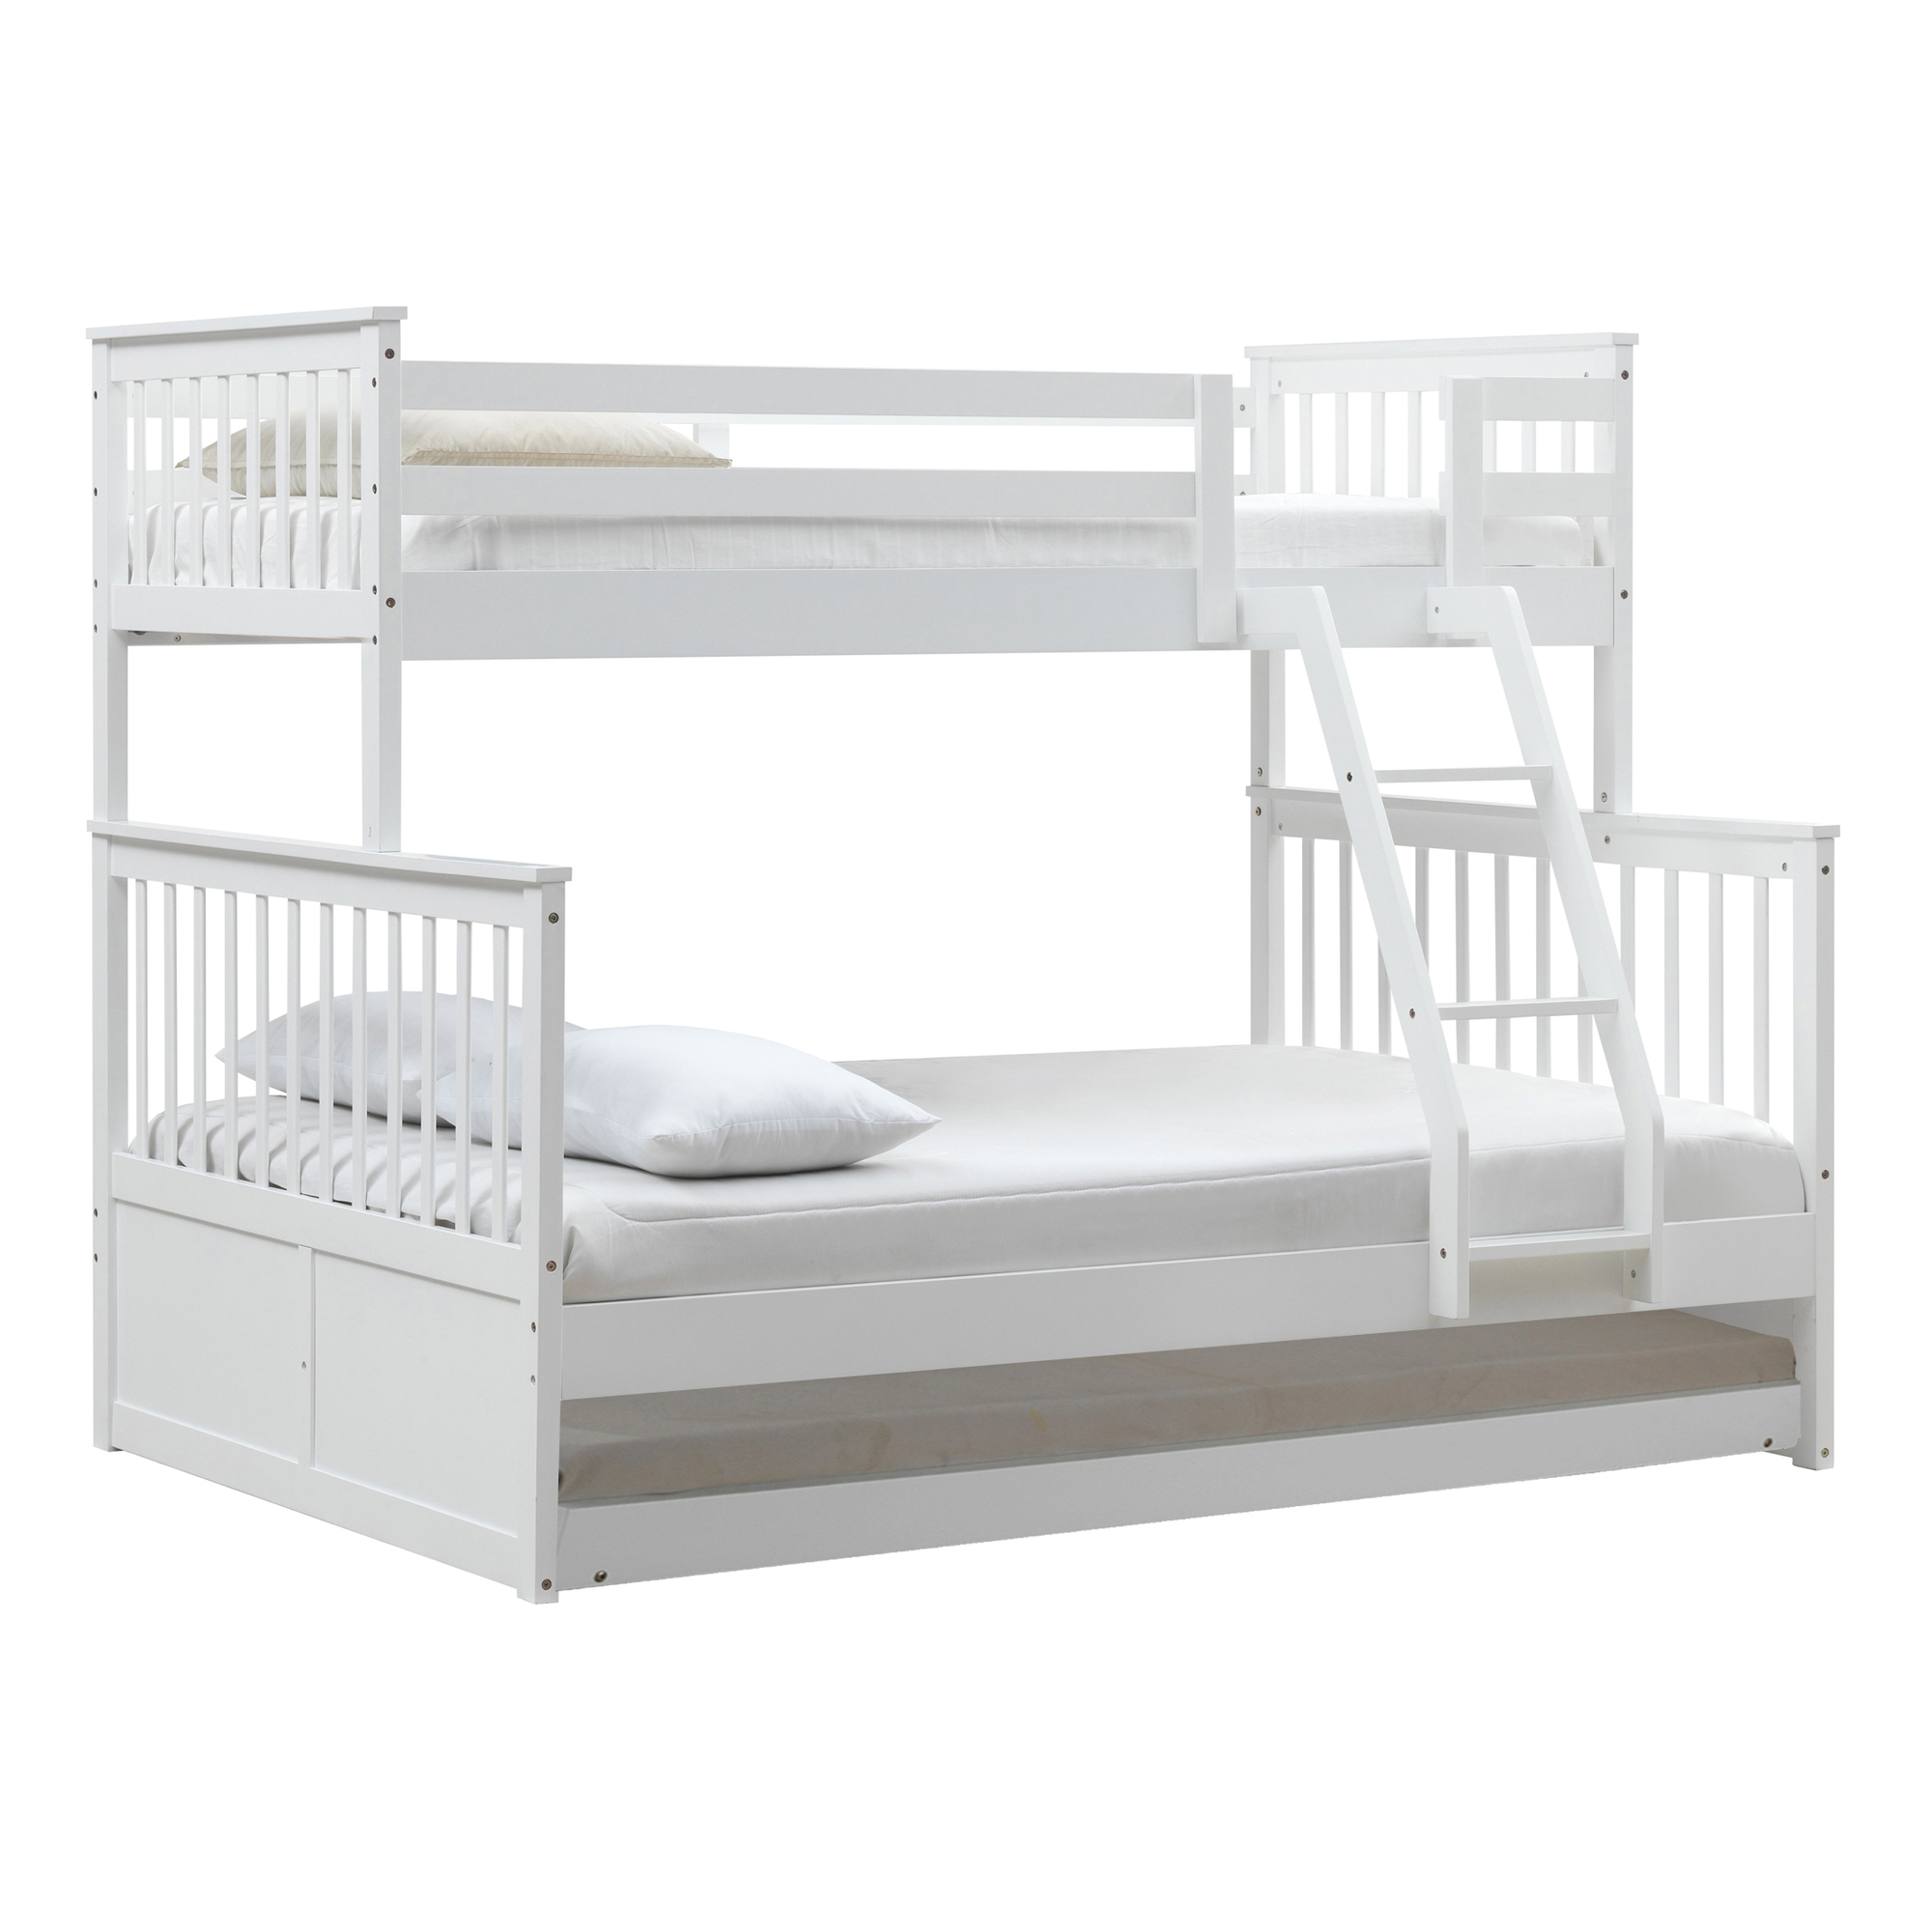 Vic Furniture White Seattle Single Over Double Bunk Bed With Trundle Temple Webster